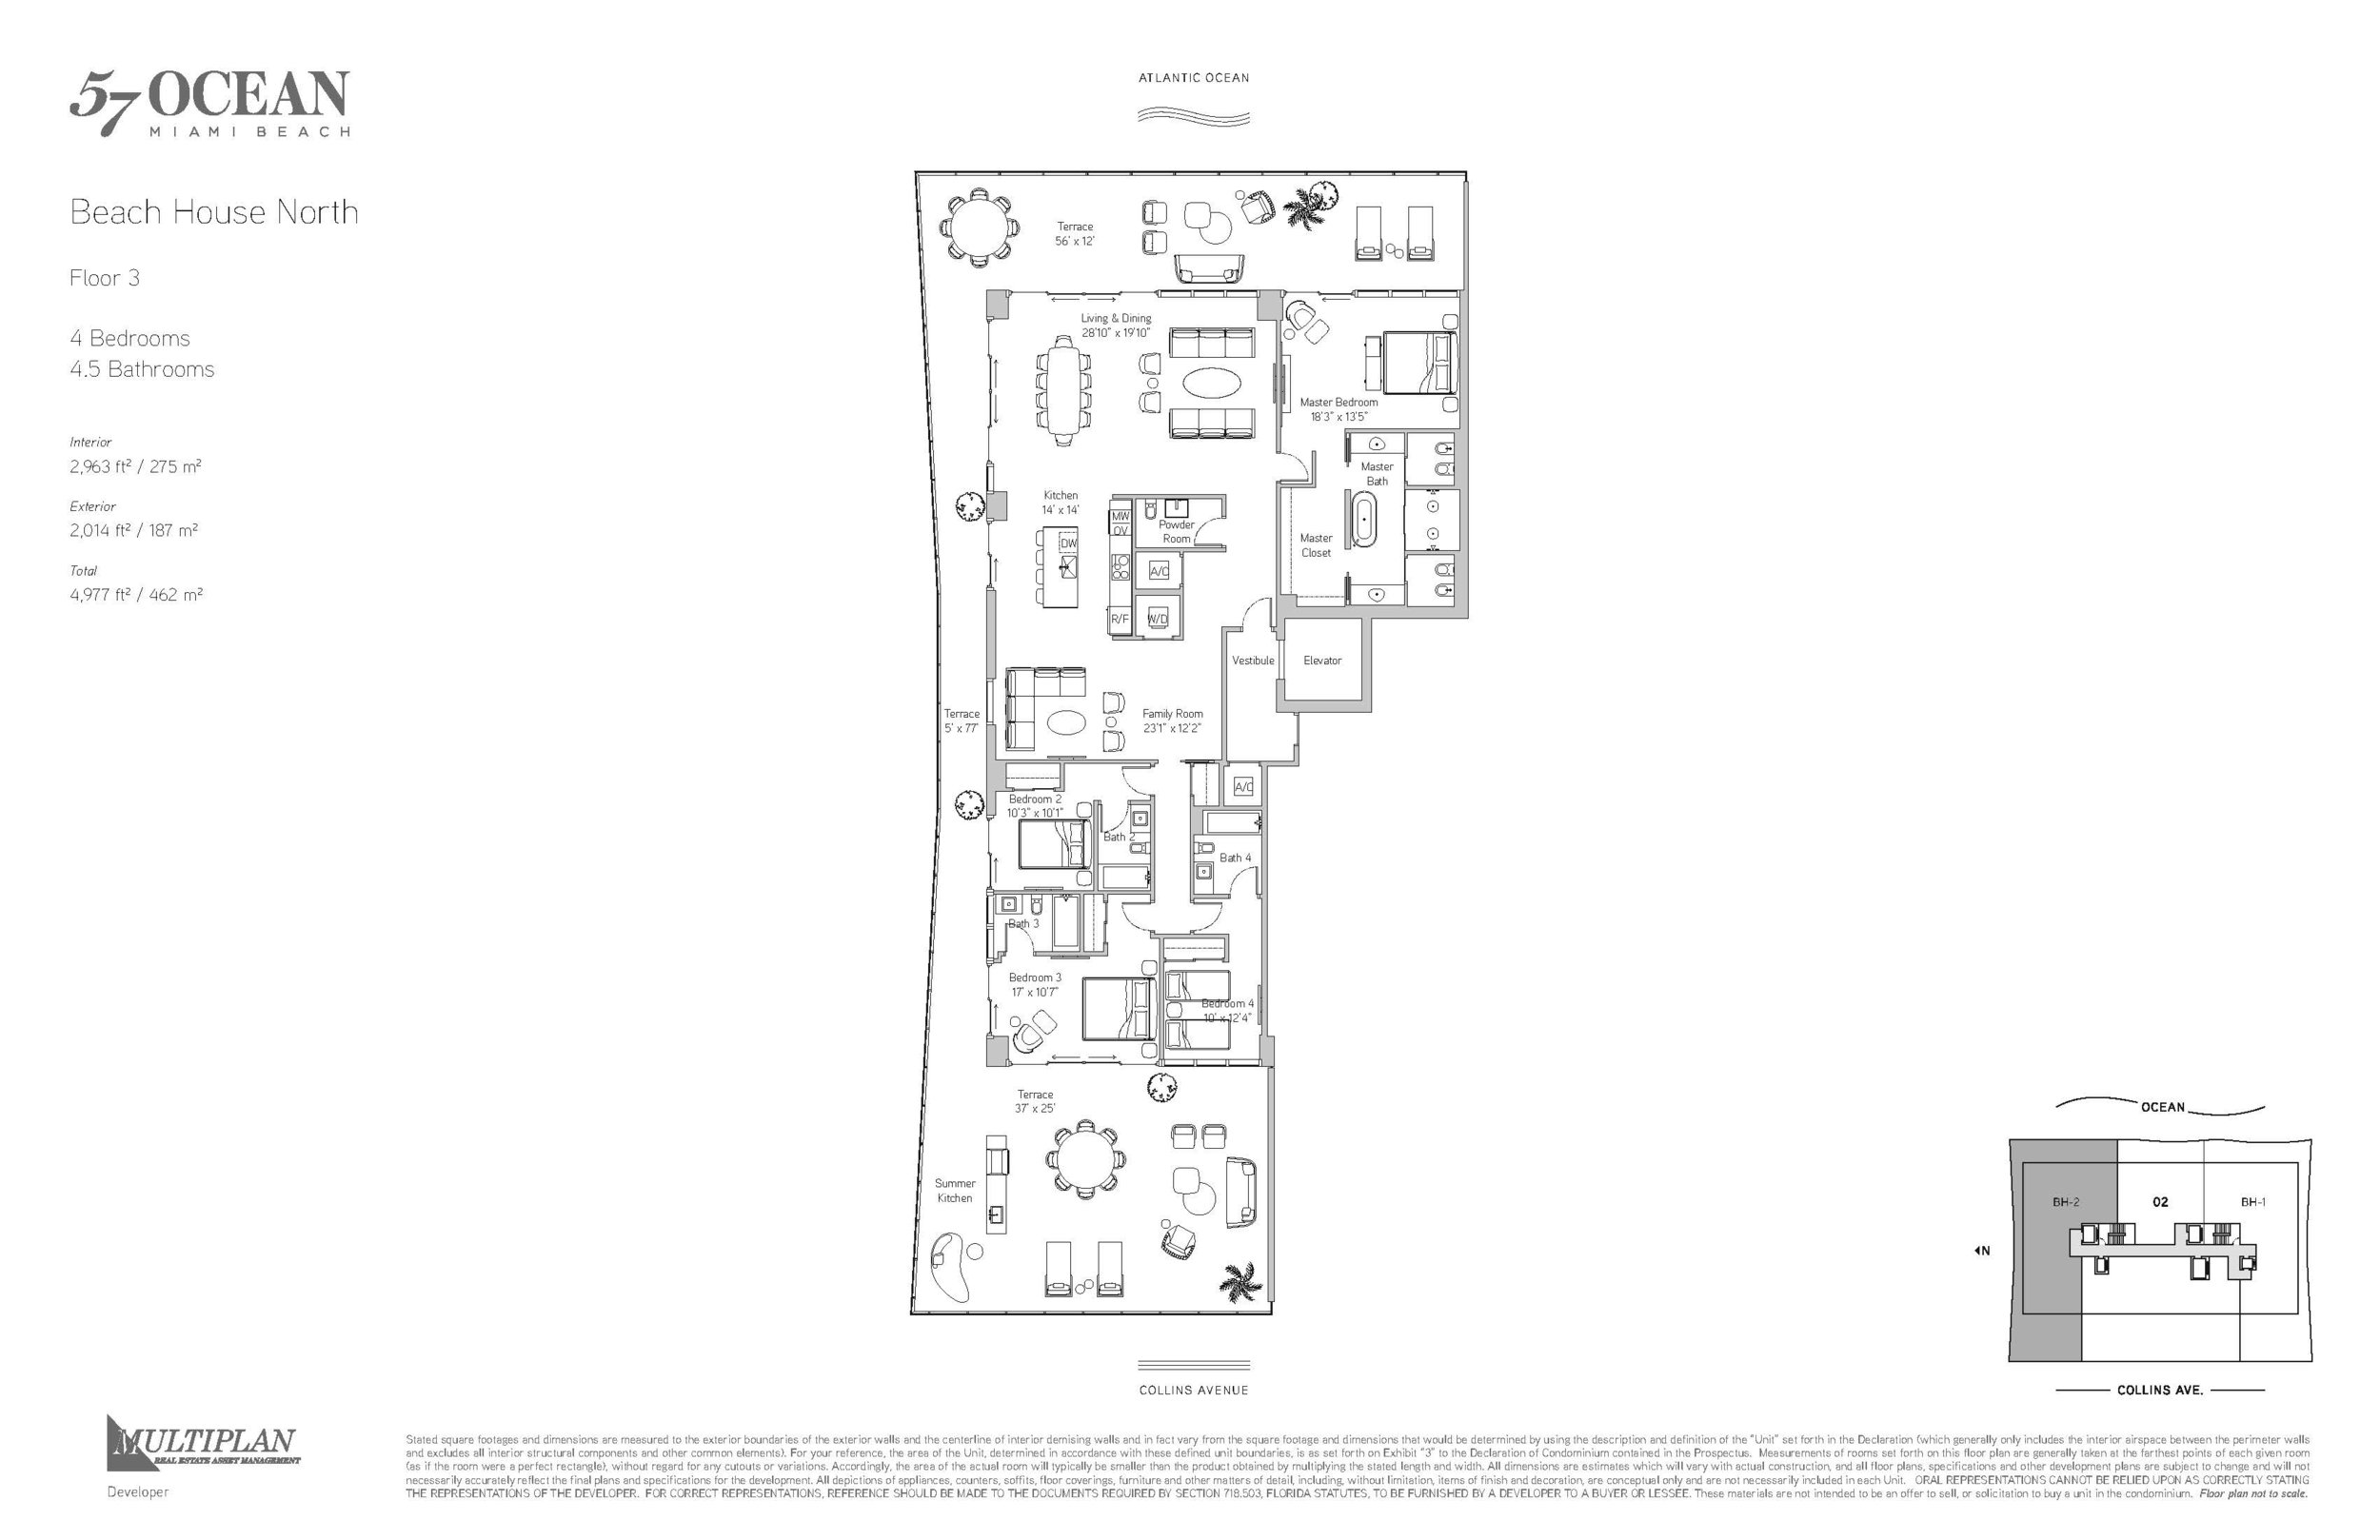 57 Ocean Floor Plans - 4 Bedroom Beach House North